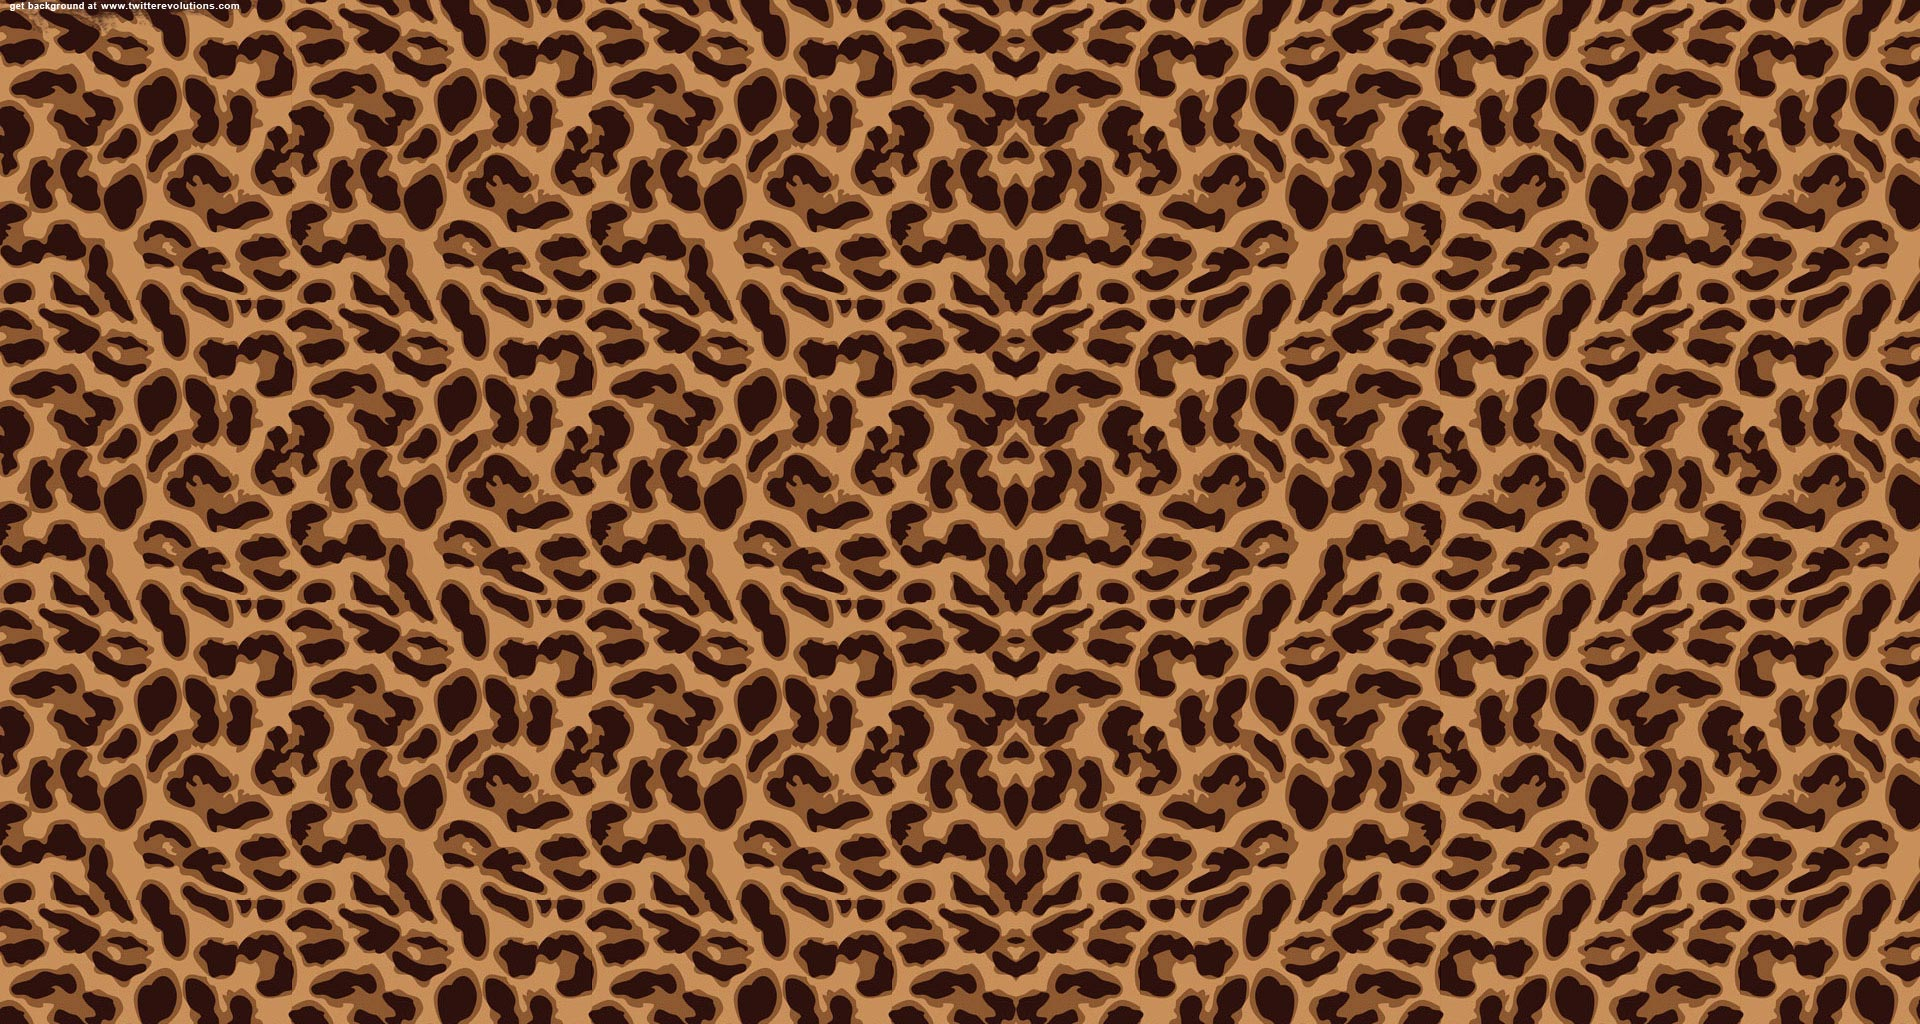 leopard print background for twitter